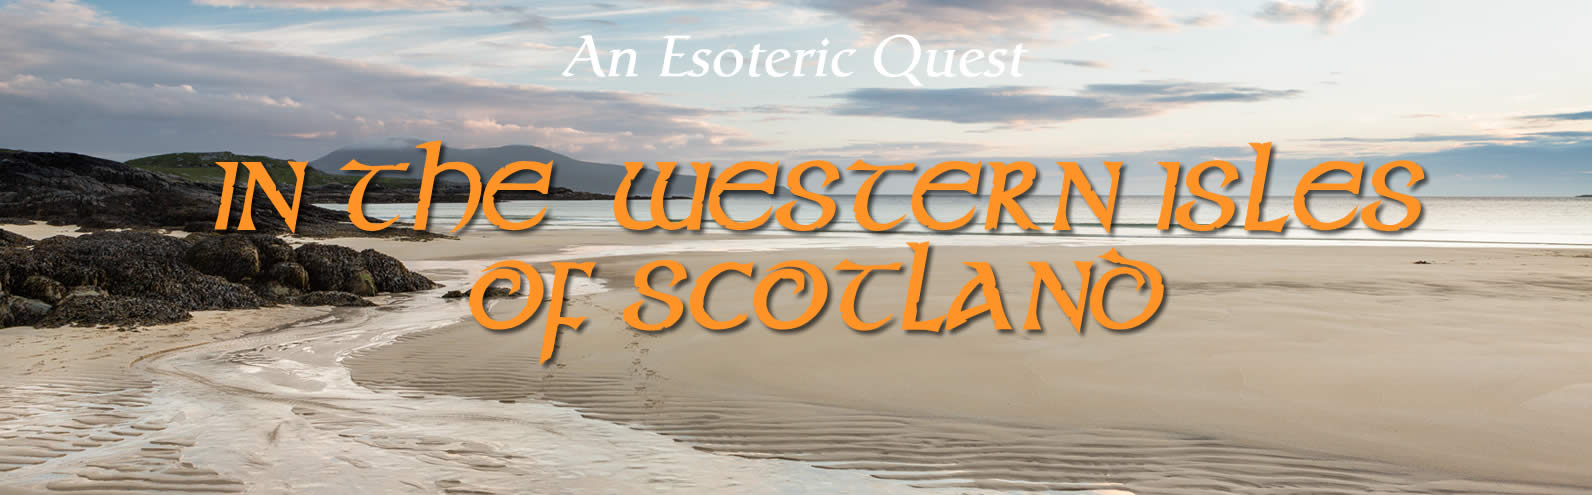 esoteric-quest-scotland-slider2